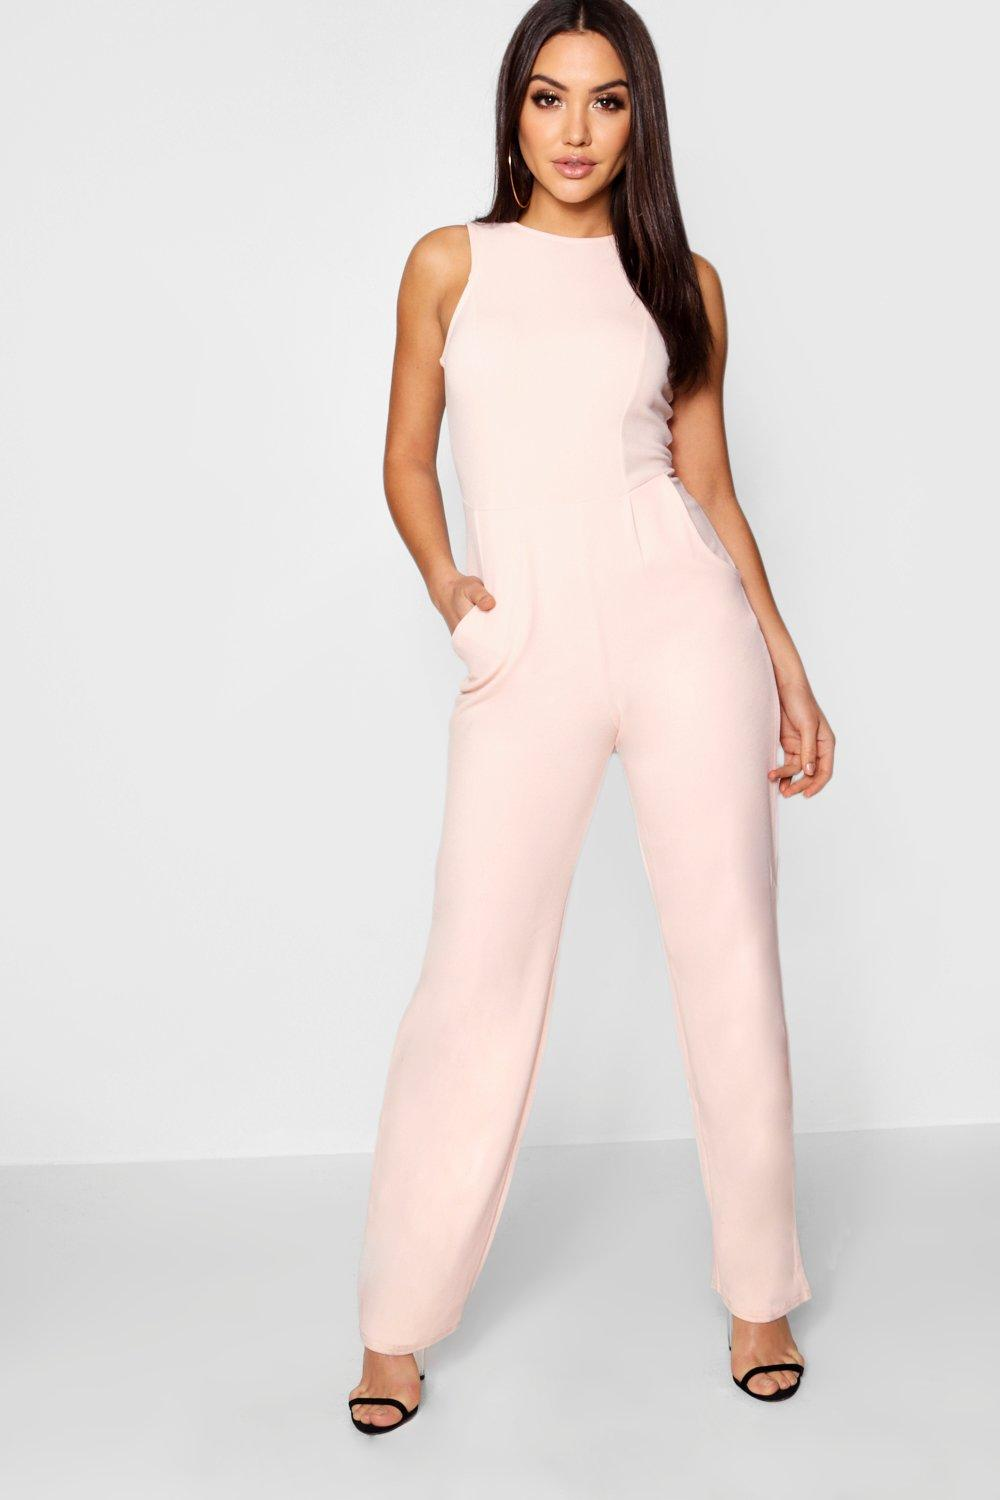 We love a good one-piece look like a pair of overalls, rompers, or a jumpsuit. It's so easy to get dressed and looks so effortlessly cool to boot! Denim overalls are fun and casual to wear.